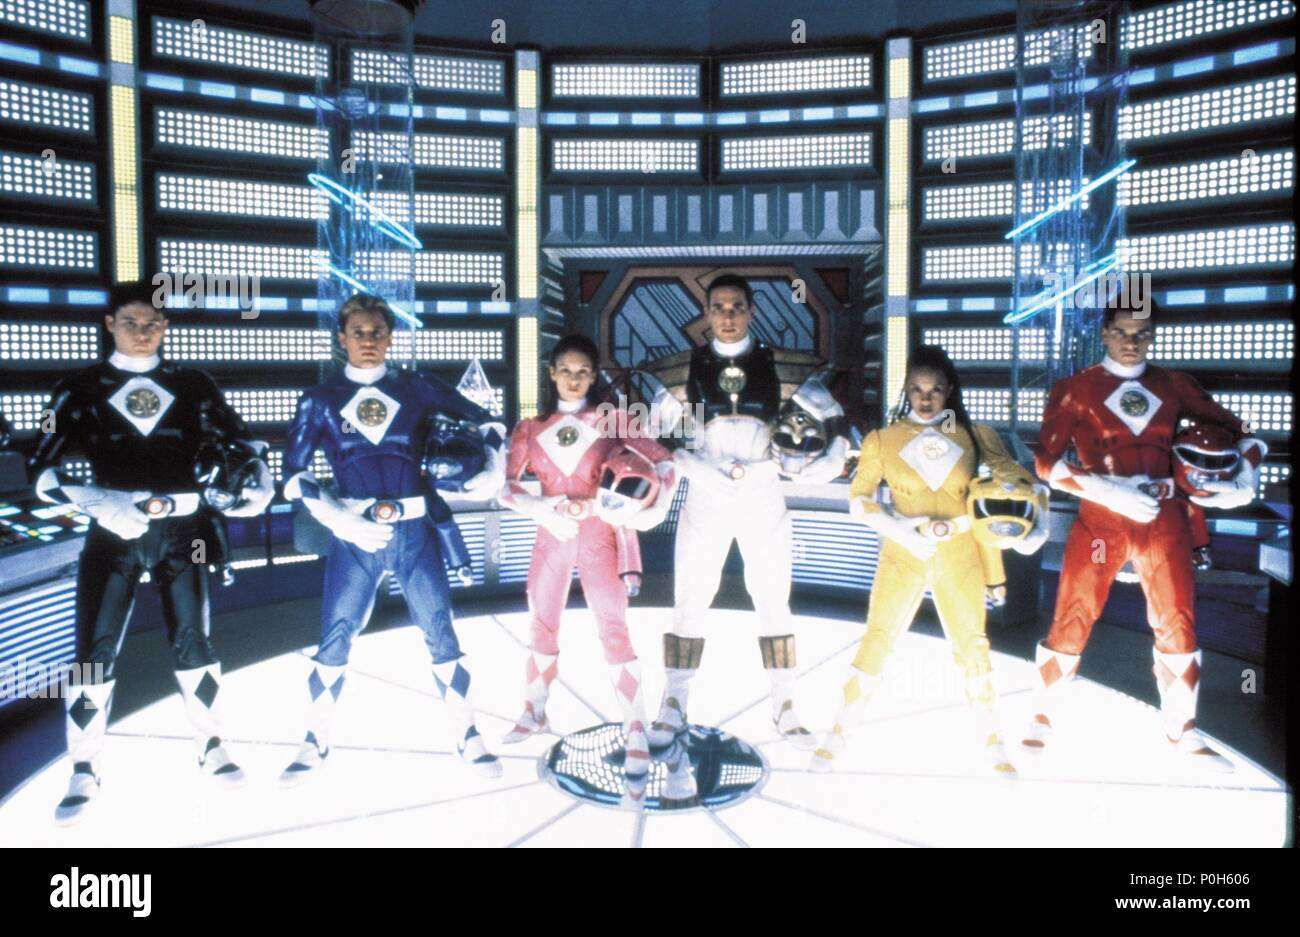 Original Film Title: MIGHTY MORPHIN POWER RANGERS: THE MOVIE.  English Title: MIGHTY MORPHIN POWER RANGERS: THE MOVIE.  Film Director: BRYAN SPICER; STEVE WANG.  Year: 1995. Credit: 20TH CENTURY FOX / TOWNLEY, JIM / Album Stock Photo